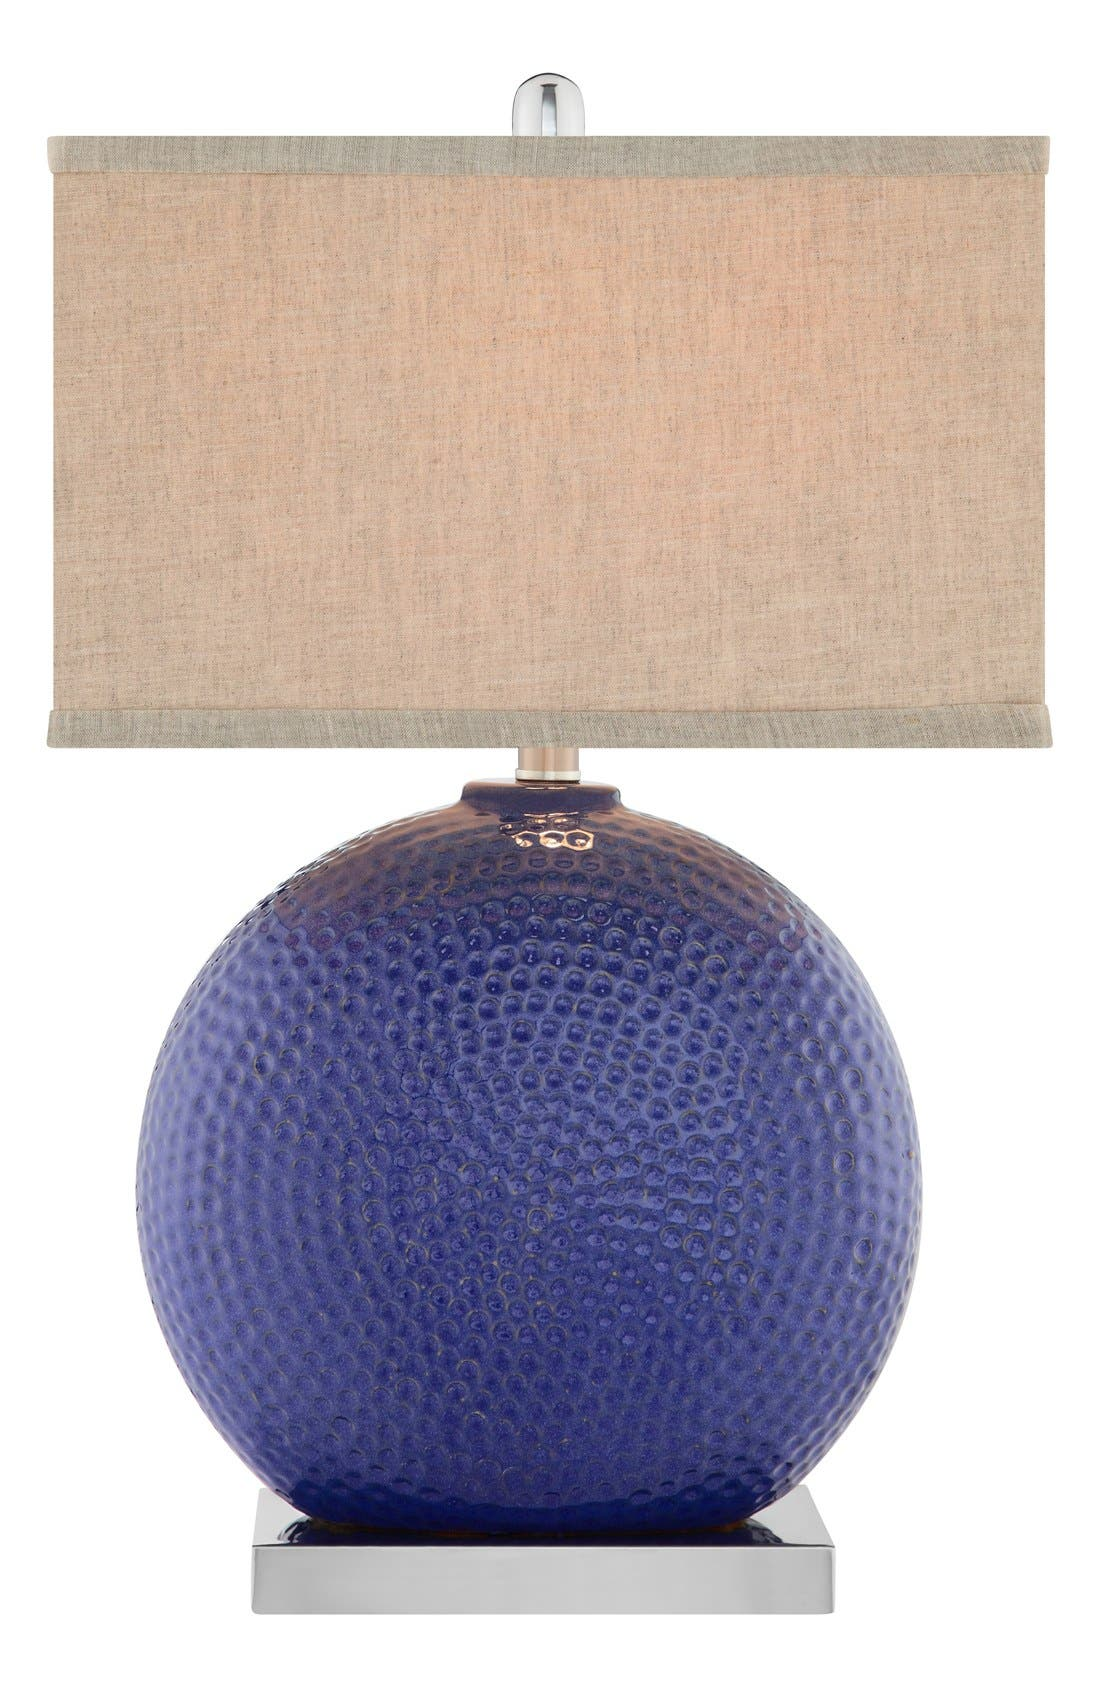 Alternate Image 1 Selected - JAlexander Lighting Dimpled Ceramic Table Lamp